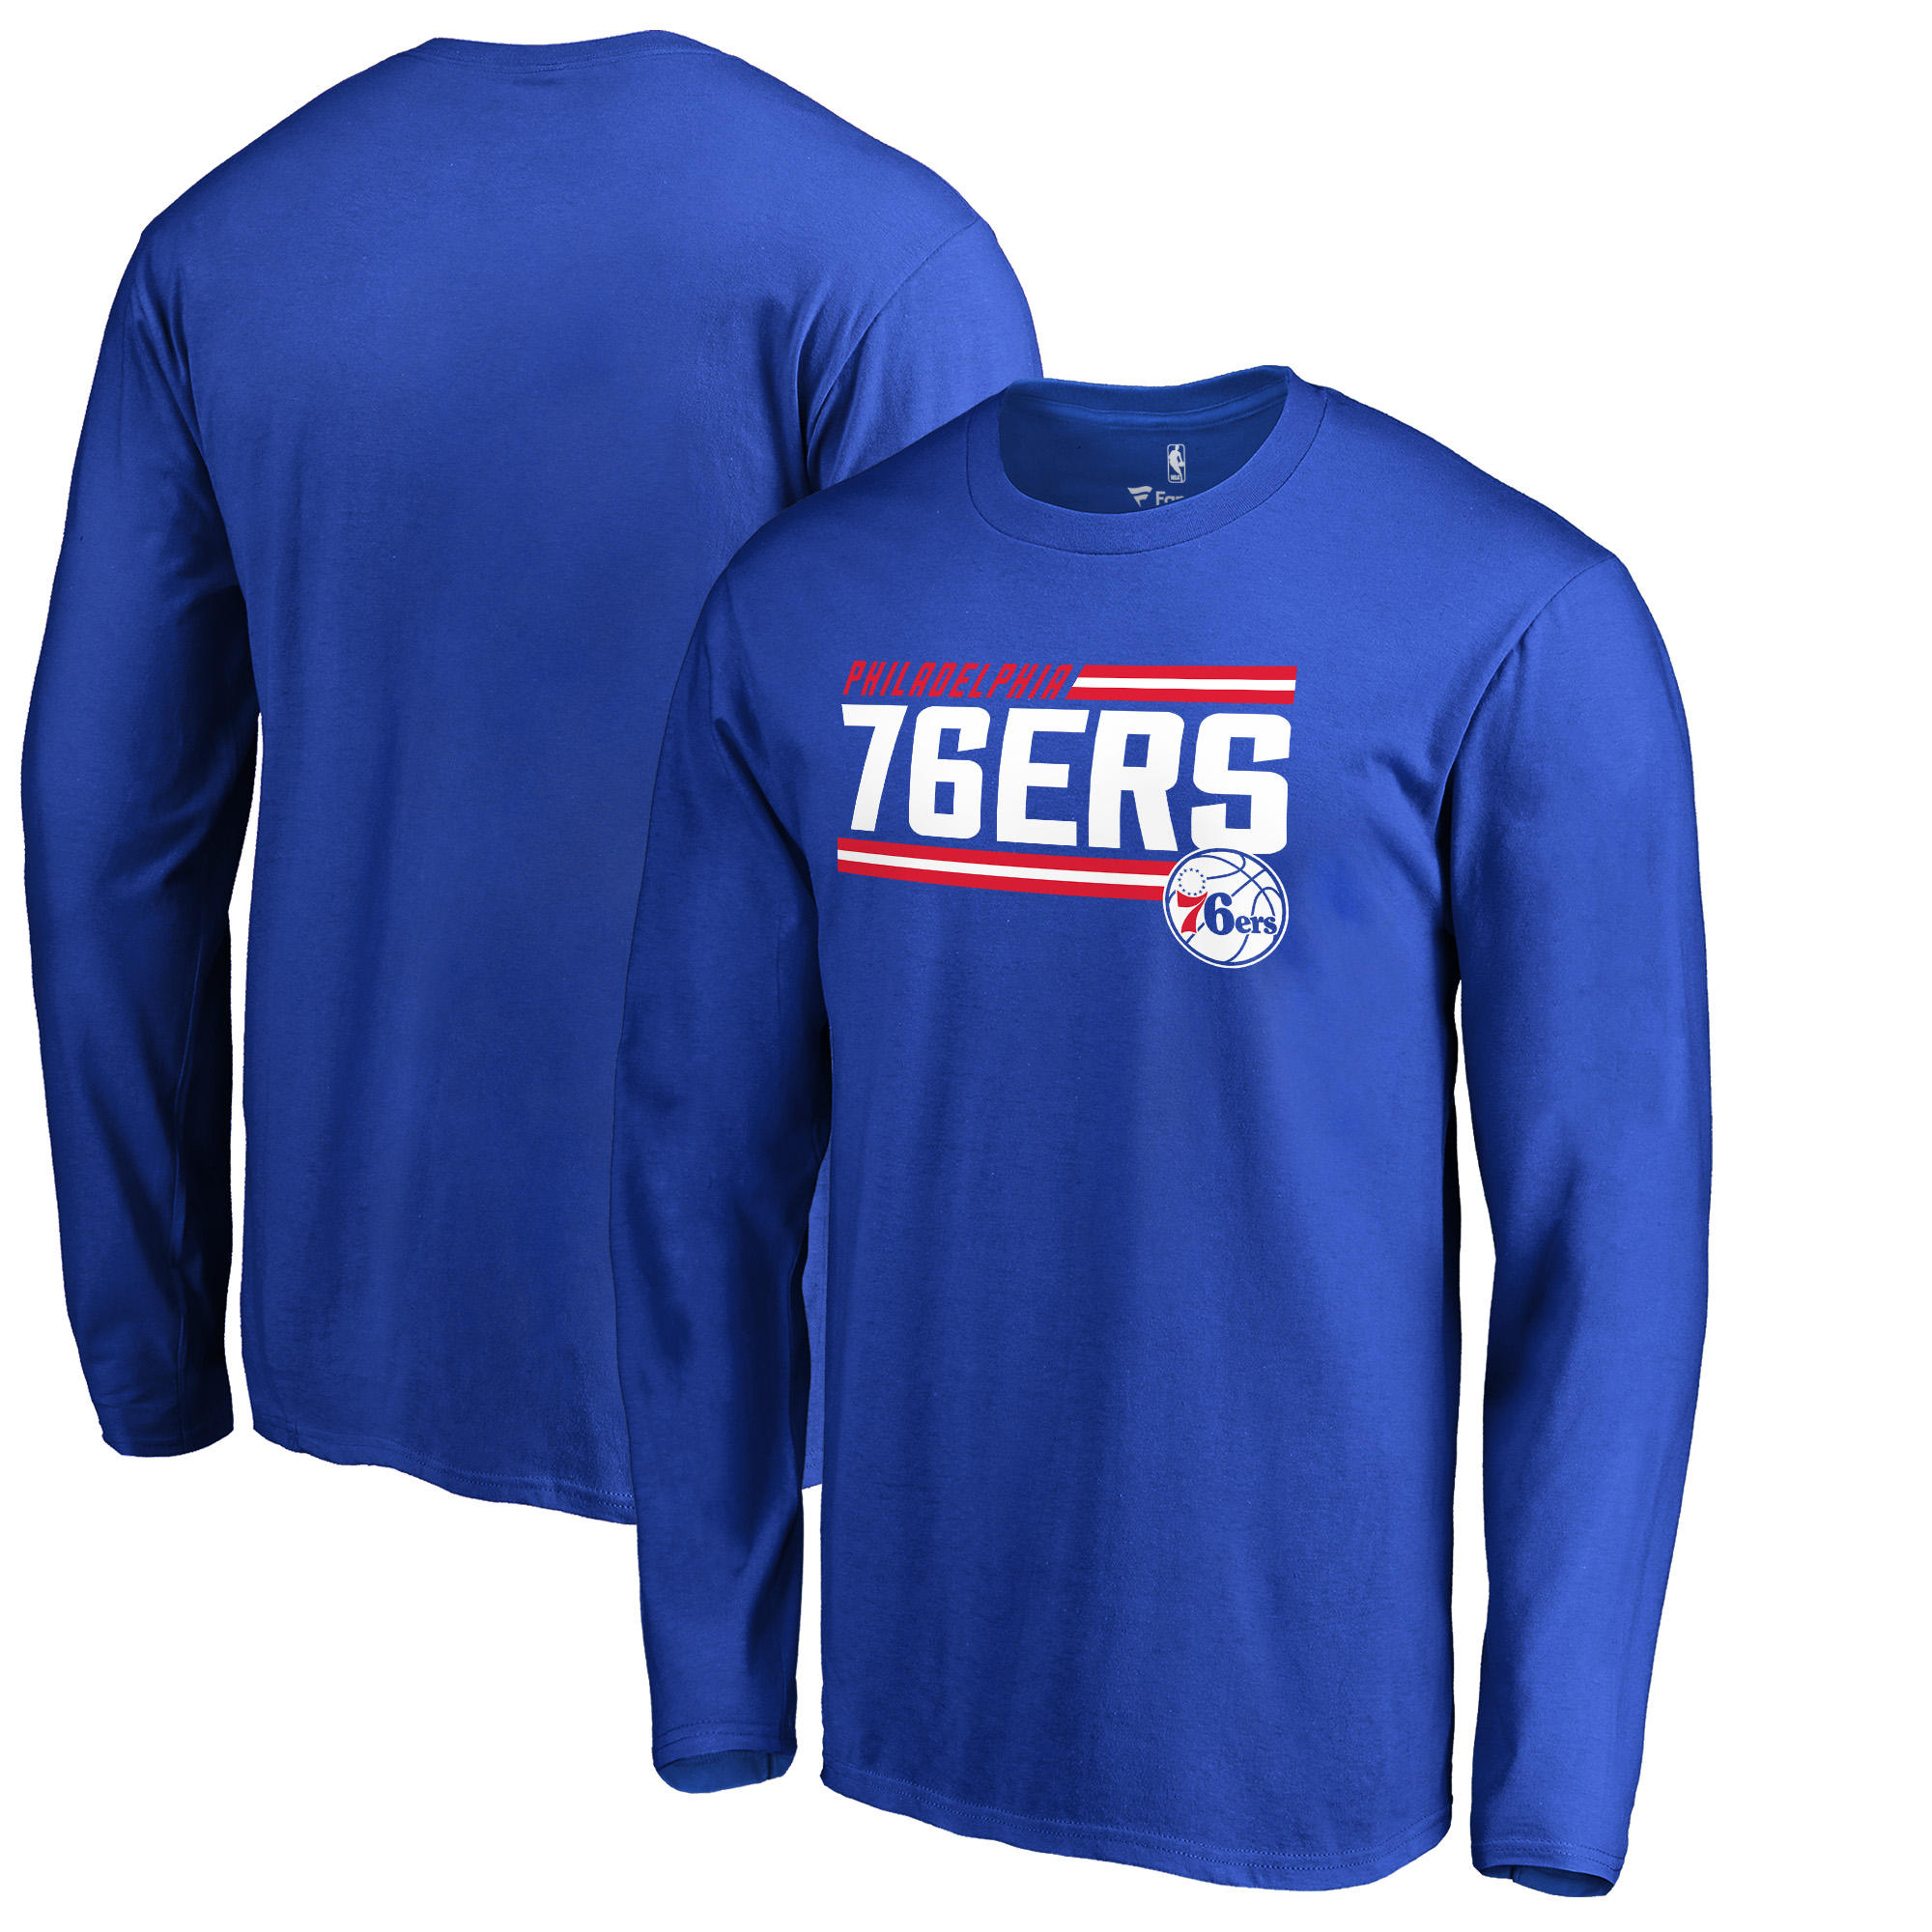 Philadelphia 76ers Fanatics Branded Onside Stripe Long Sleeve T-Shirt - Royal